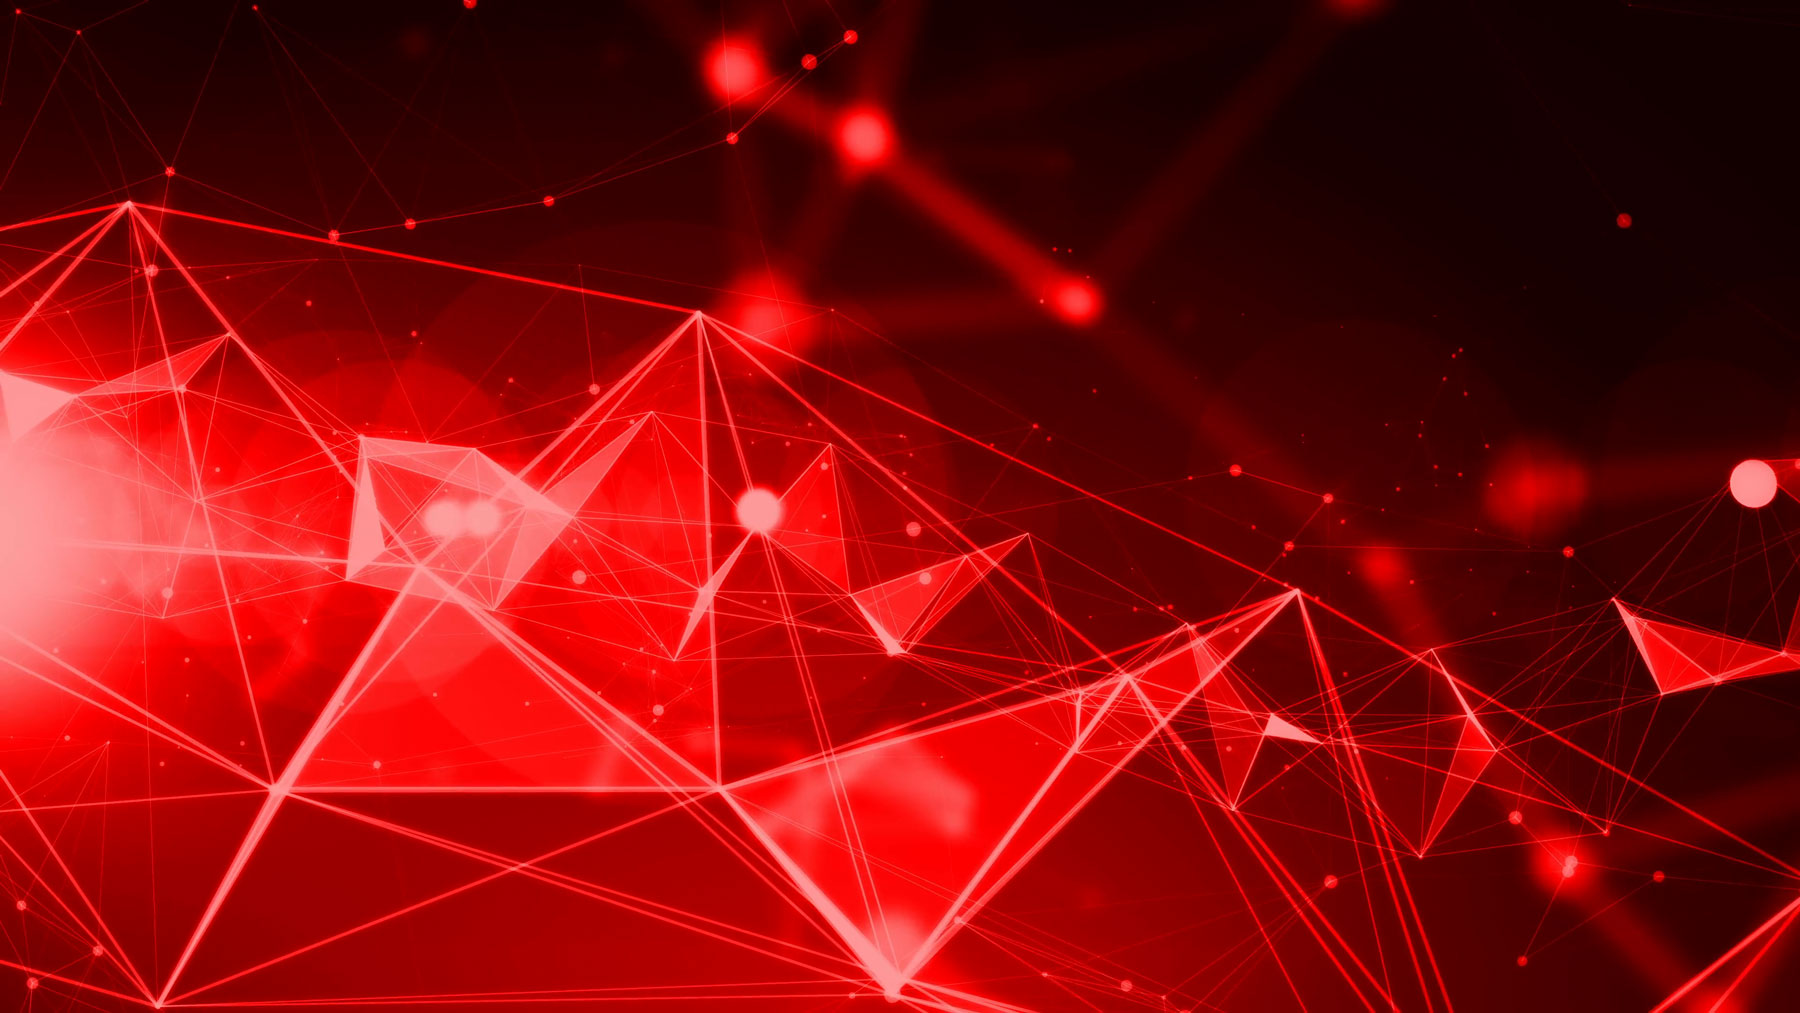 4k-technology-abstract-animation-background-seamless-loop-red-color_nxzxyeznfg__F0000